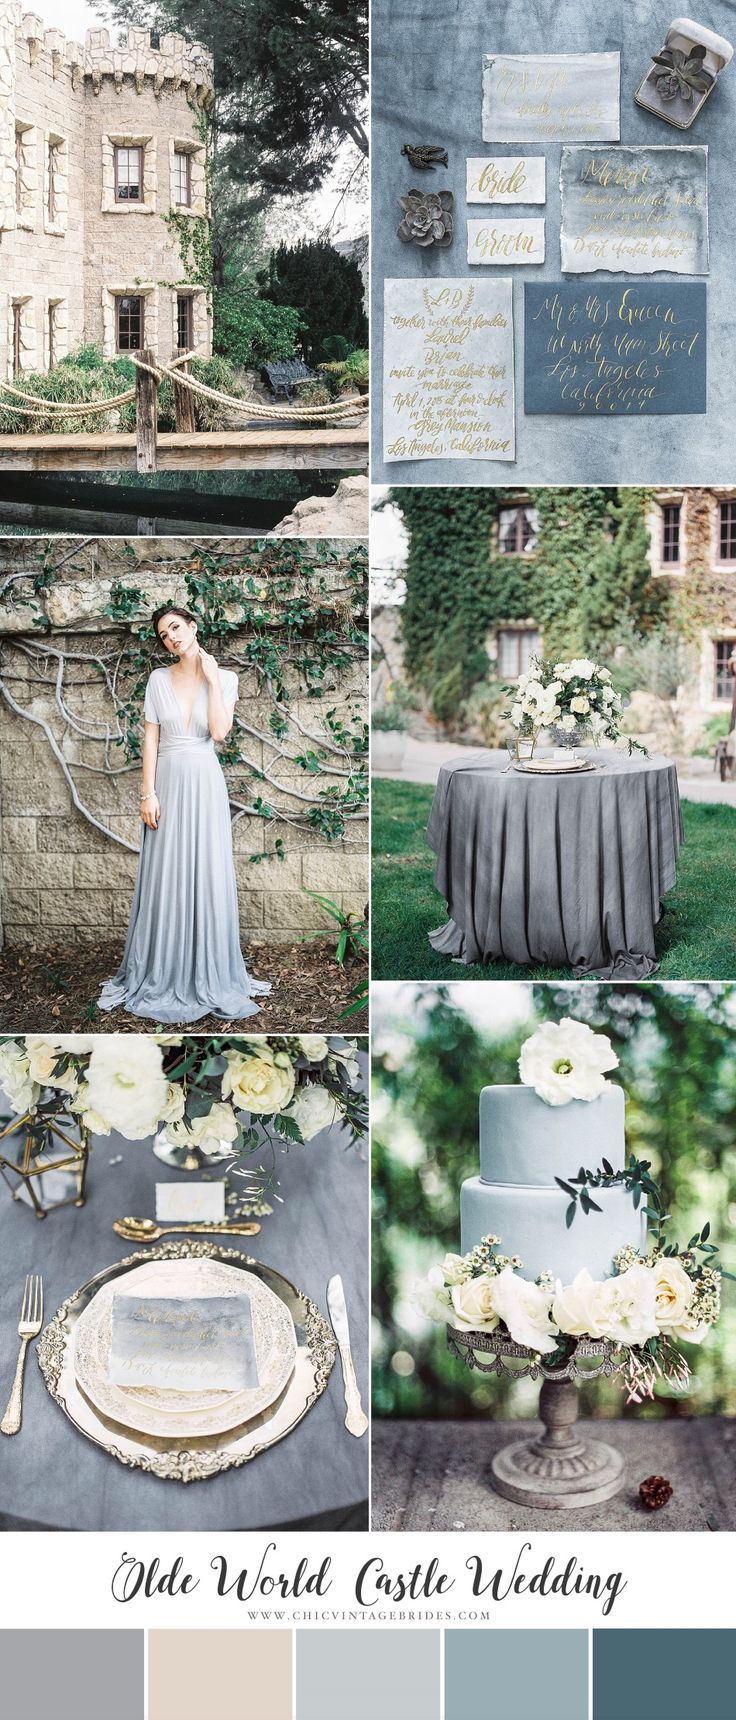 Old World Castle Wedding Inspiration